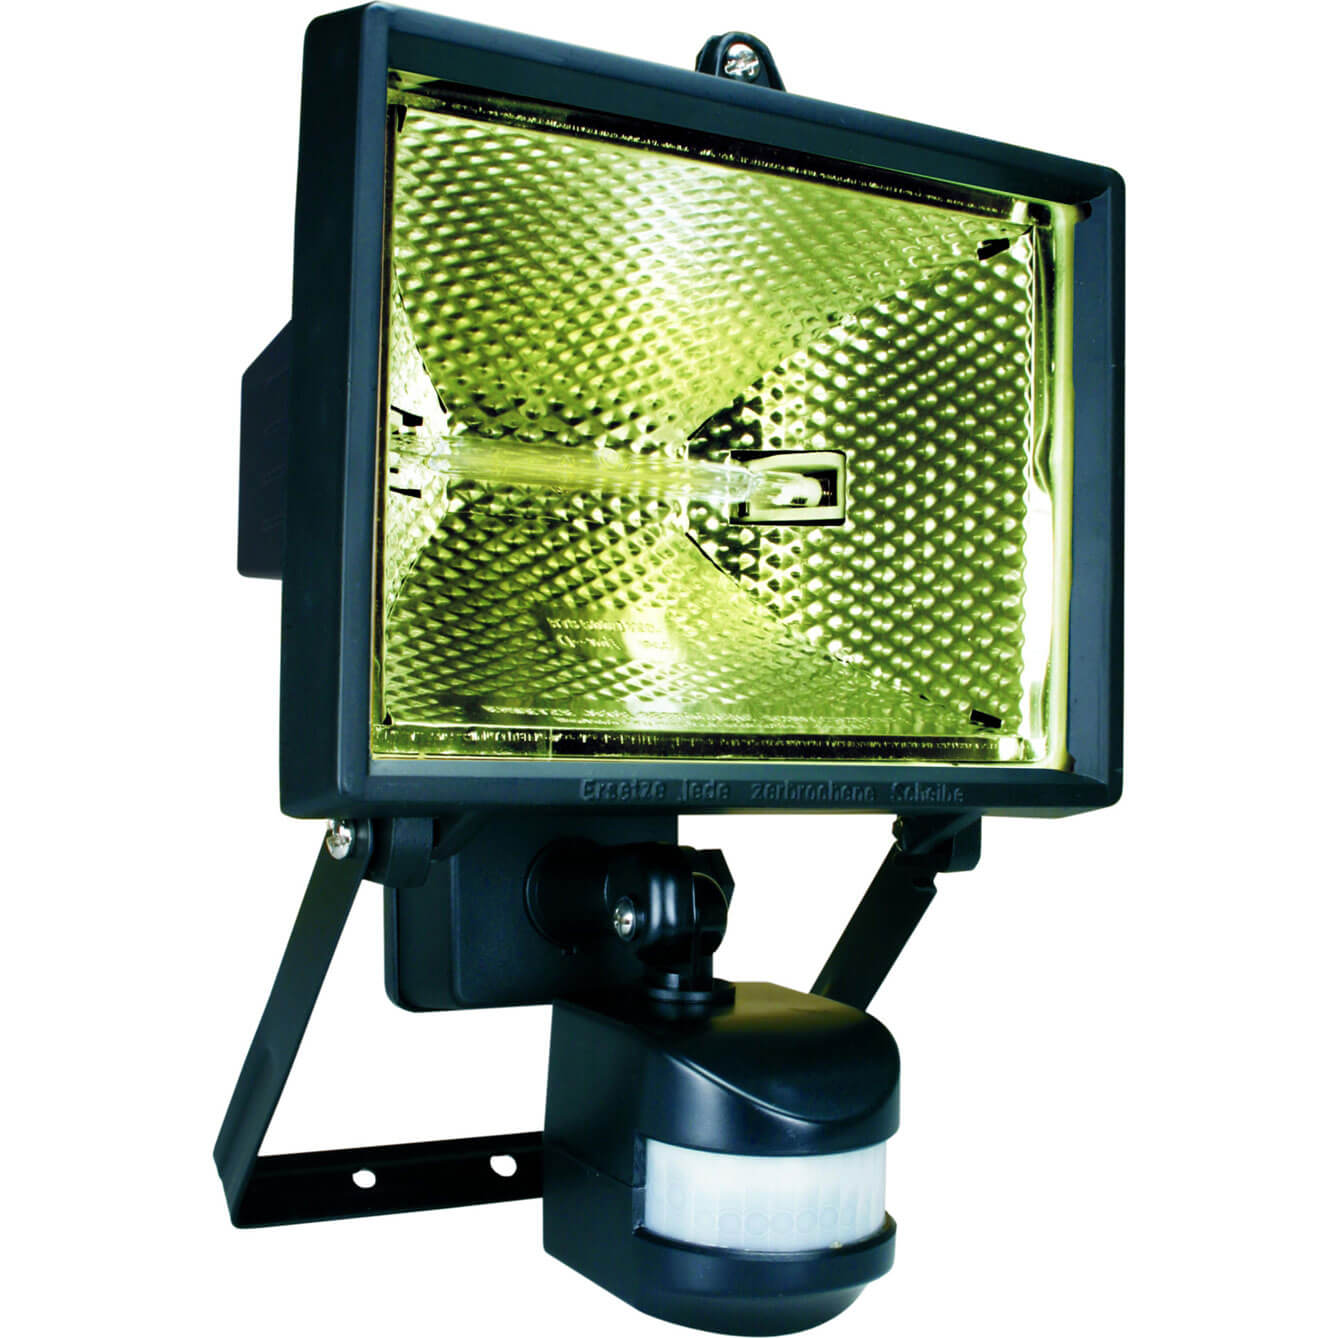 Byron ES400 Halogen Floodlight with Motion Detector Black 400w 240v